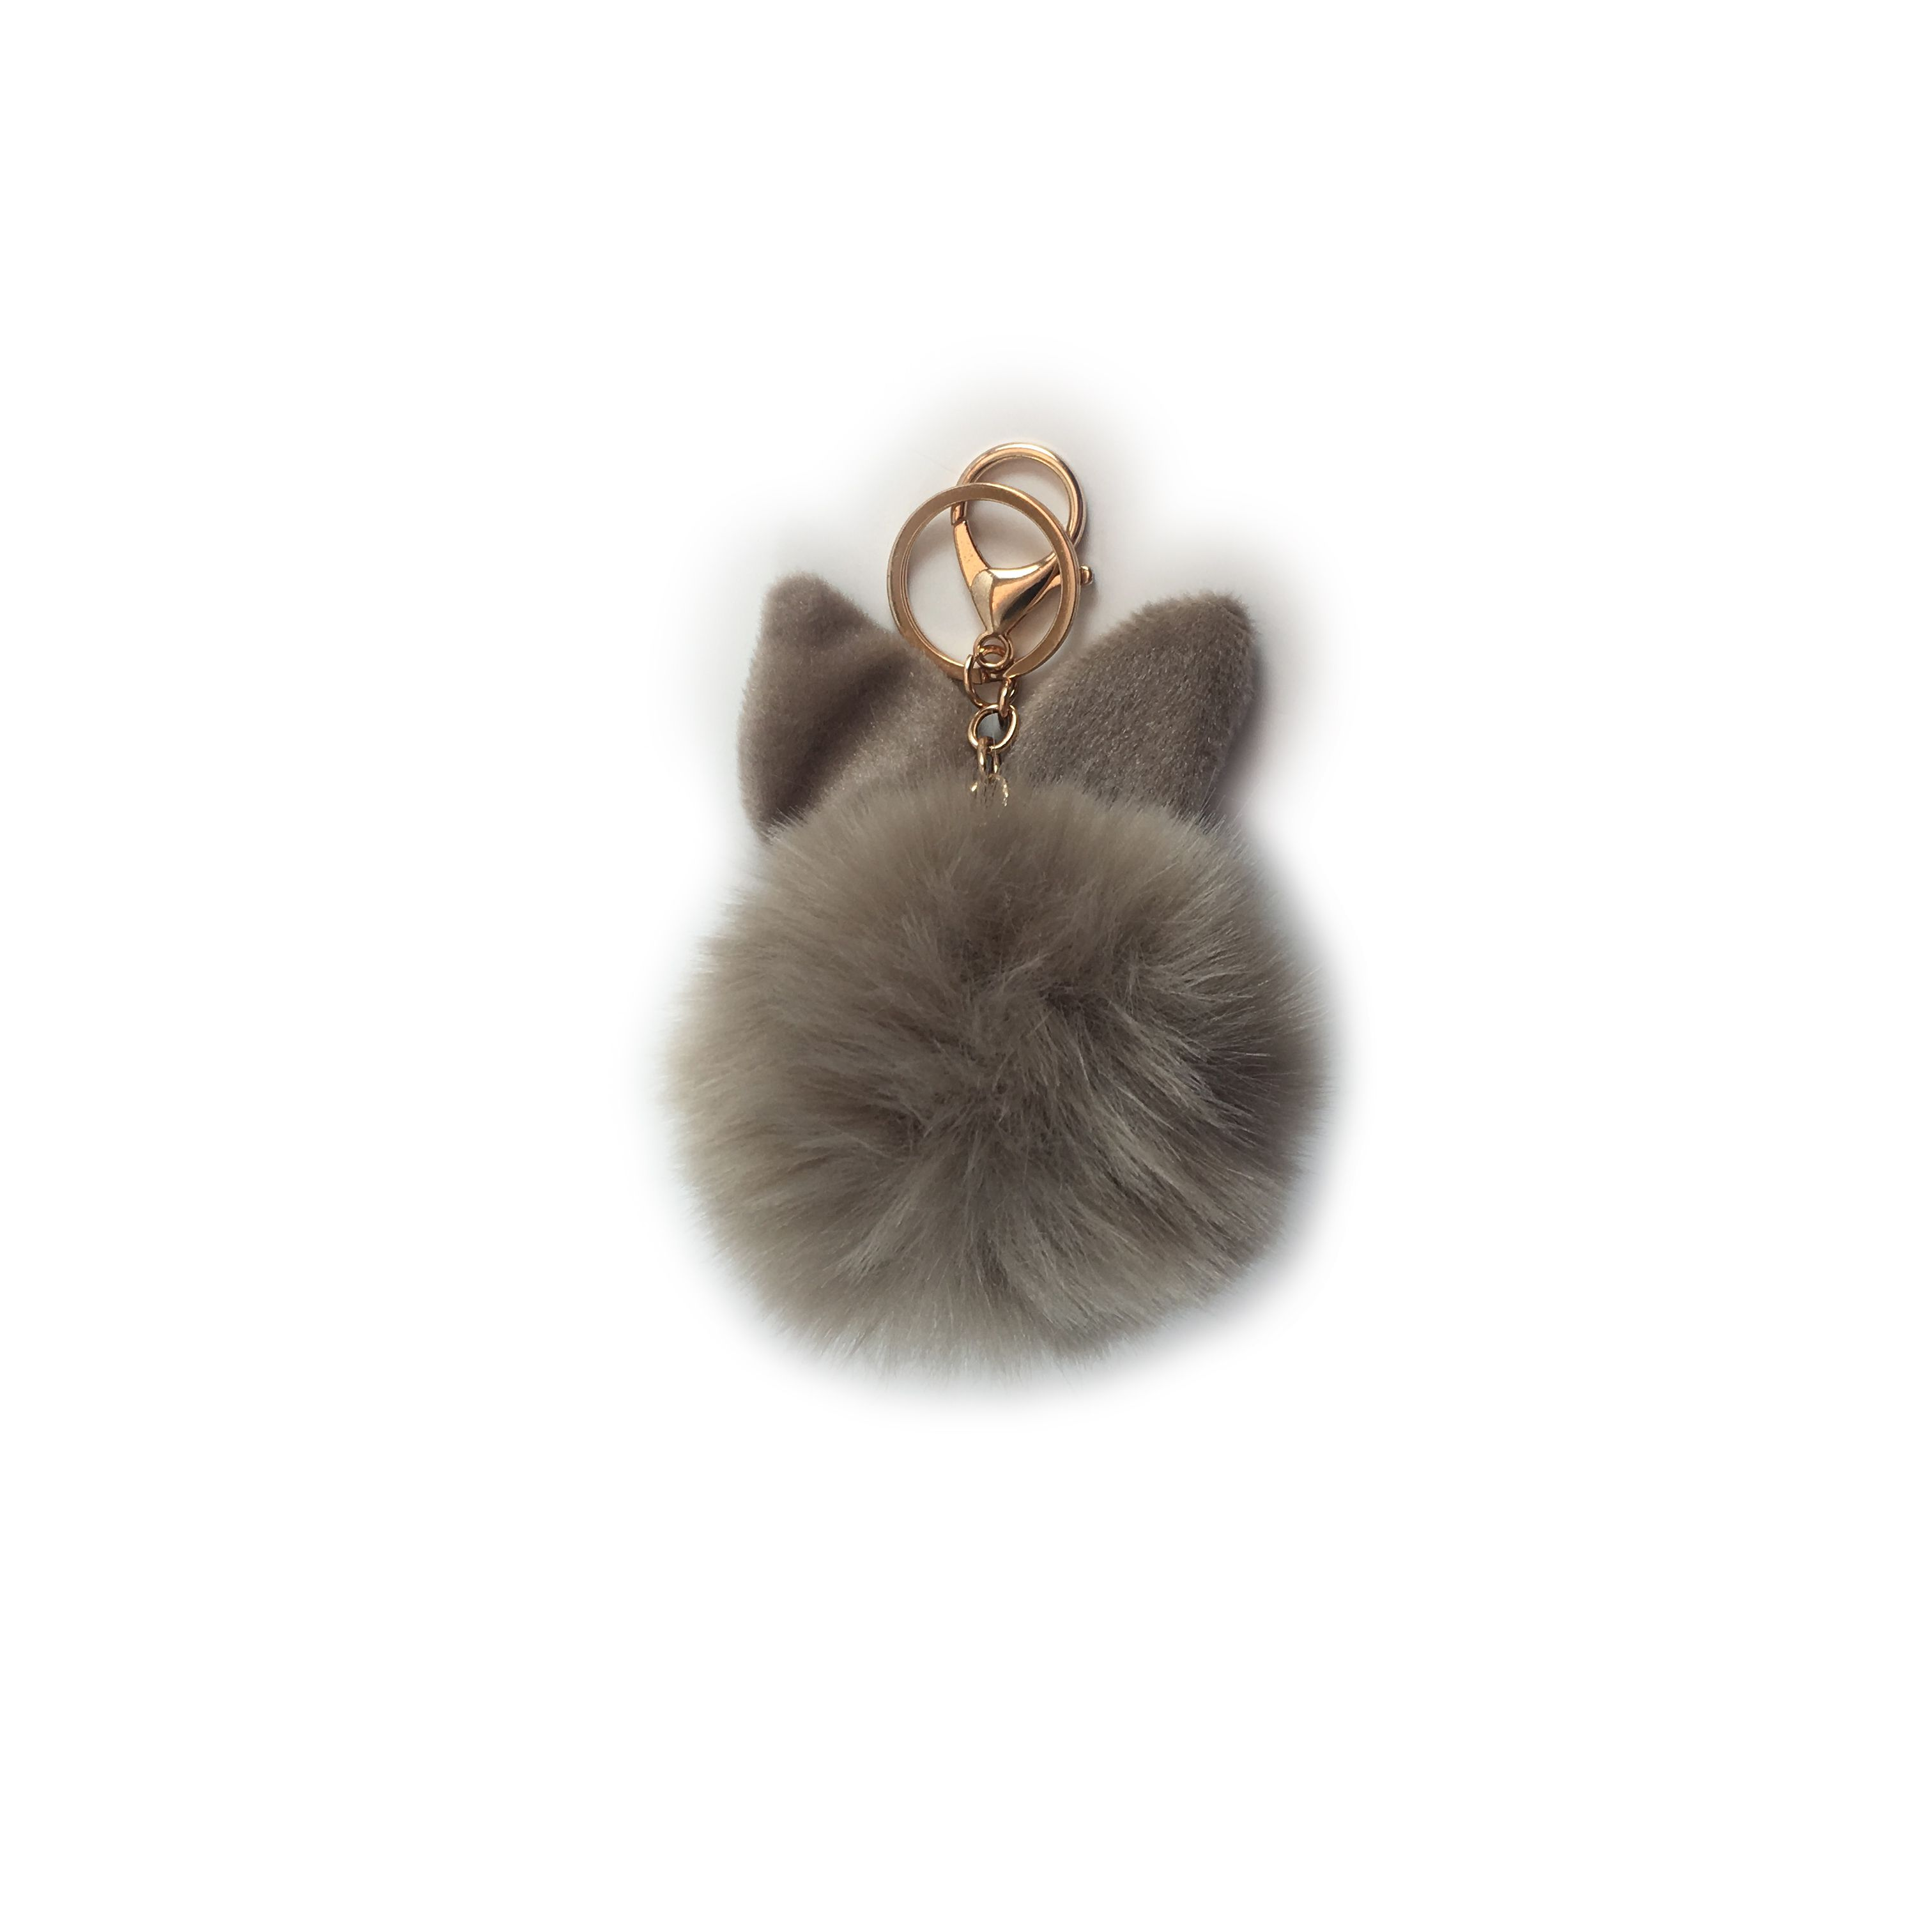 Rabbit Eat Fur Pom Pom Keychain - Accessorize your favourite handbag with the softest rabbit ear fur pom pom to complete your cute look for the next GNO!